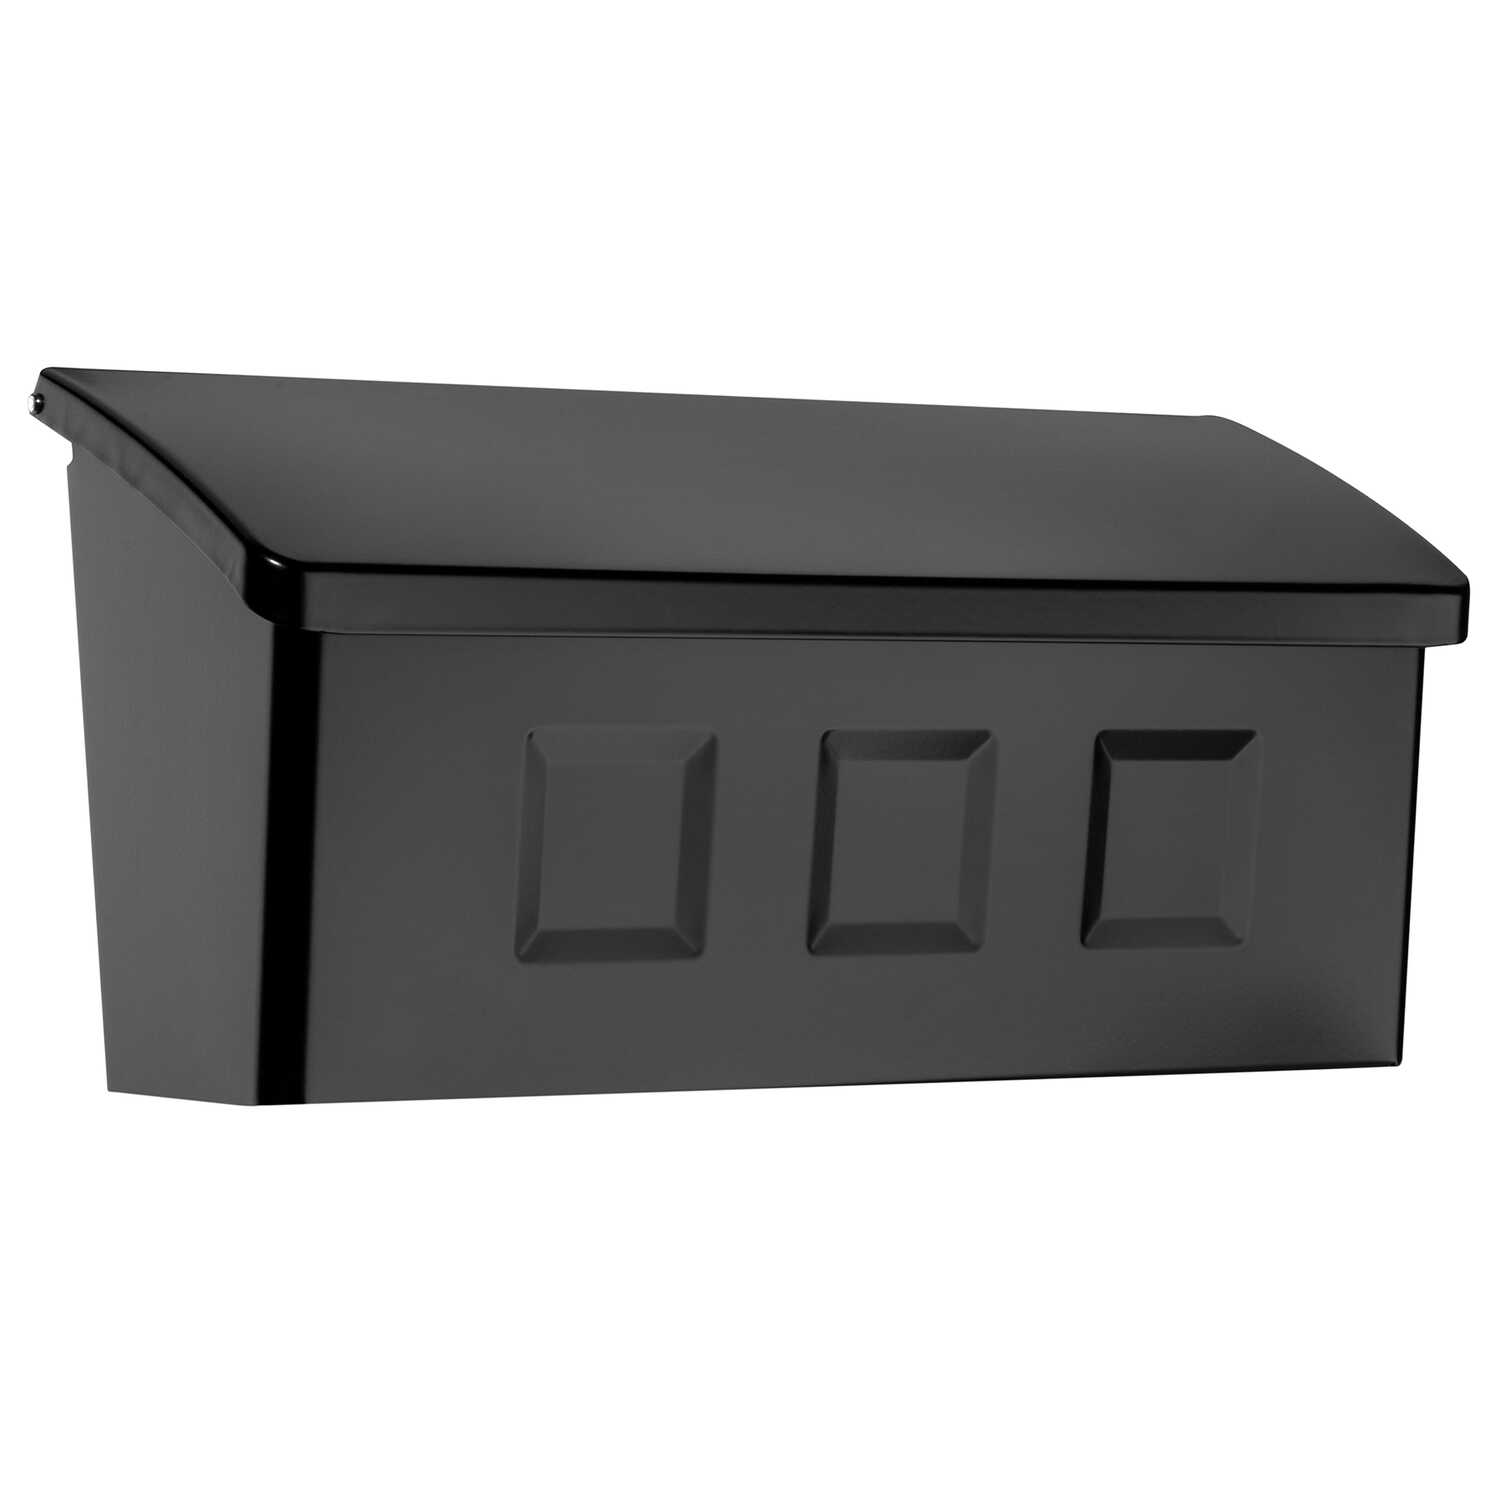 Architectural Mailboxes  Wayland  Galvanized Steel  Wall-Mounted  Black  Mailbox  4.13 in. H x 14.65